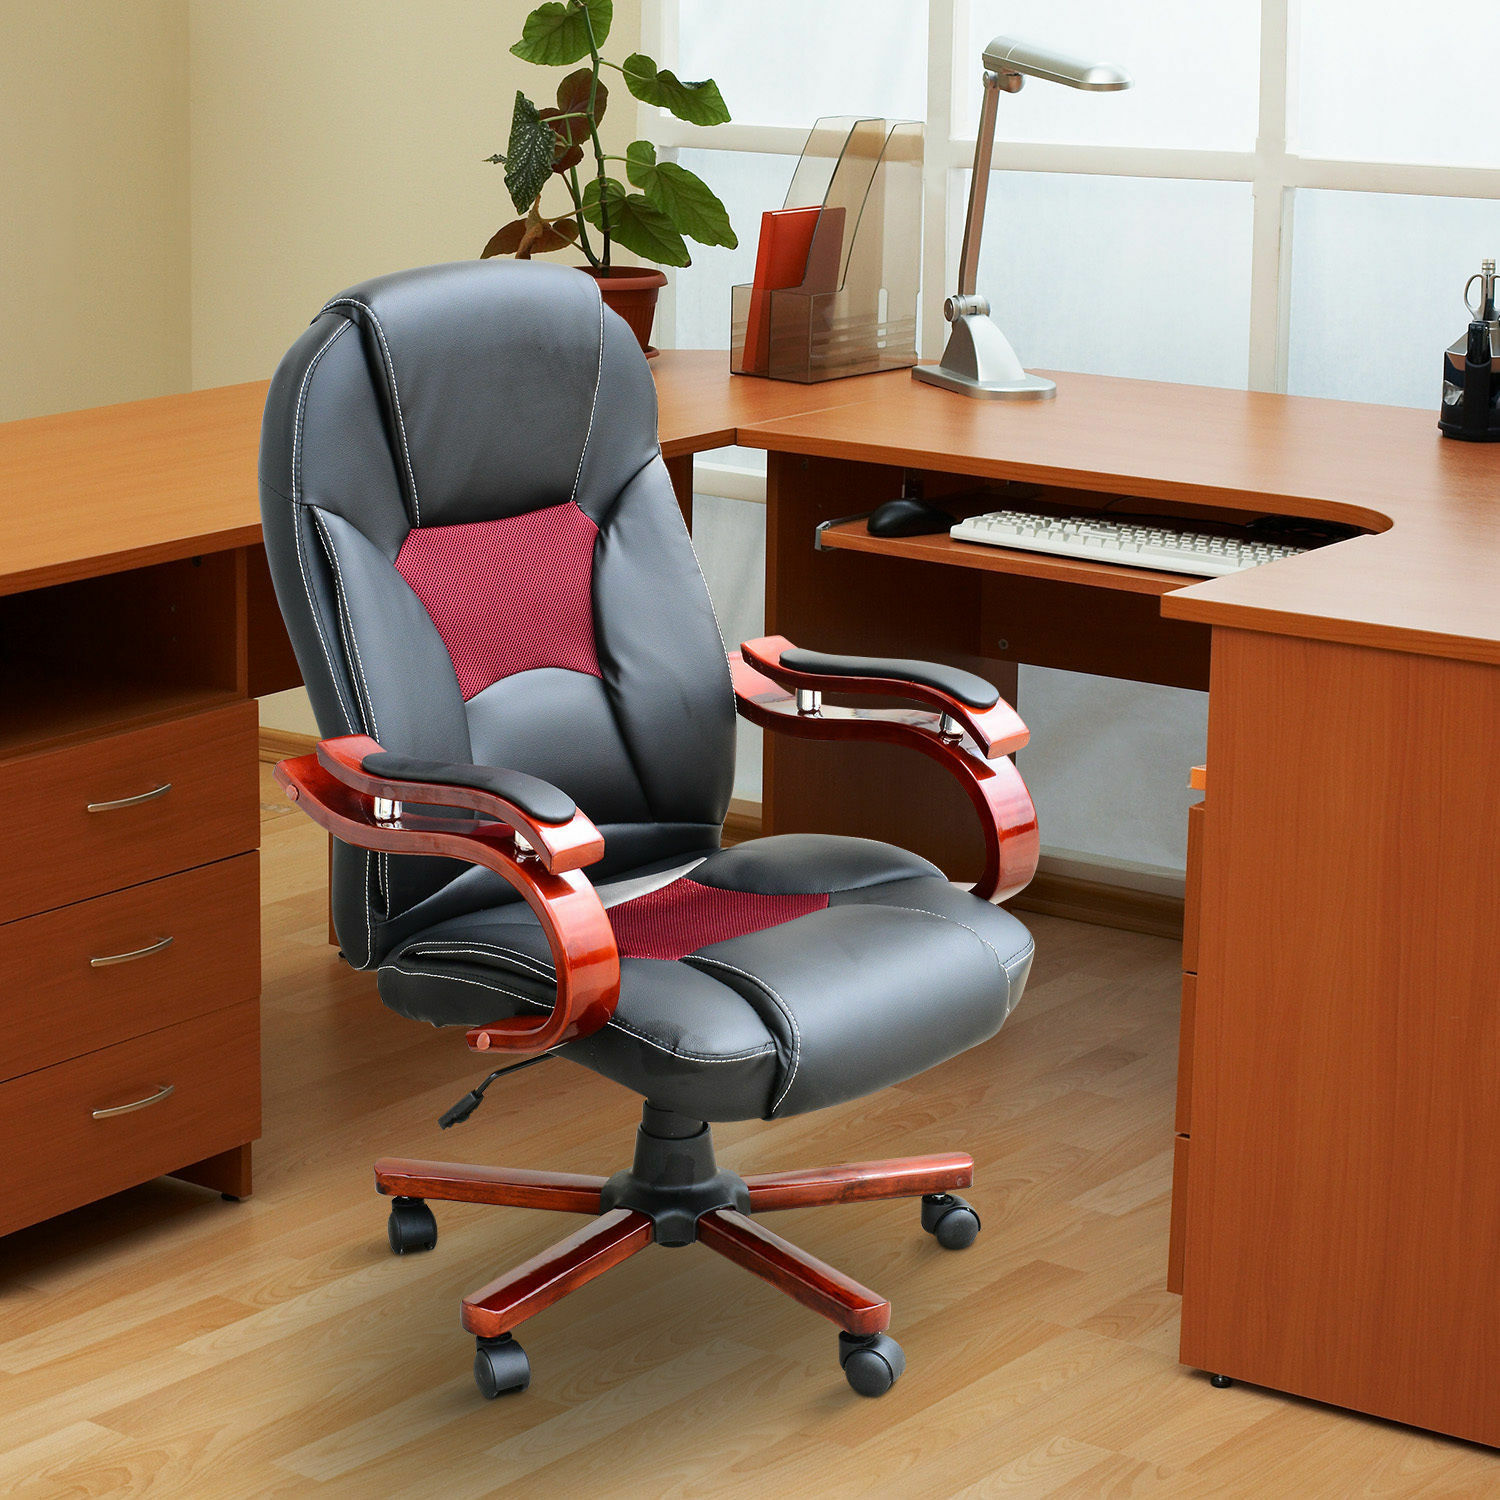 Cyber Monday Office Chairs 28 Images Cyber Monday Sale